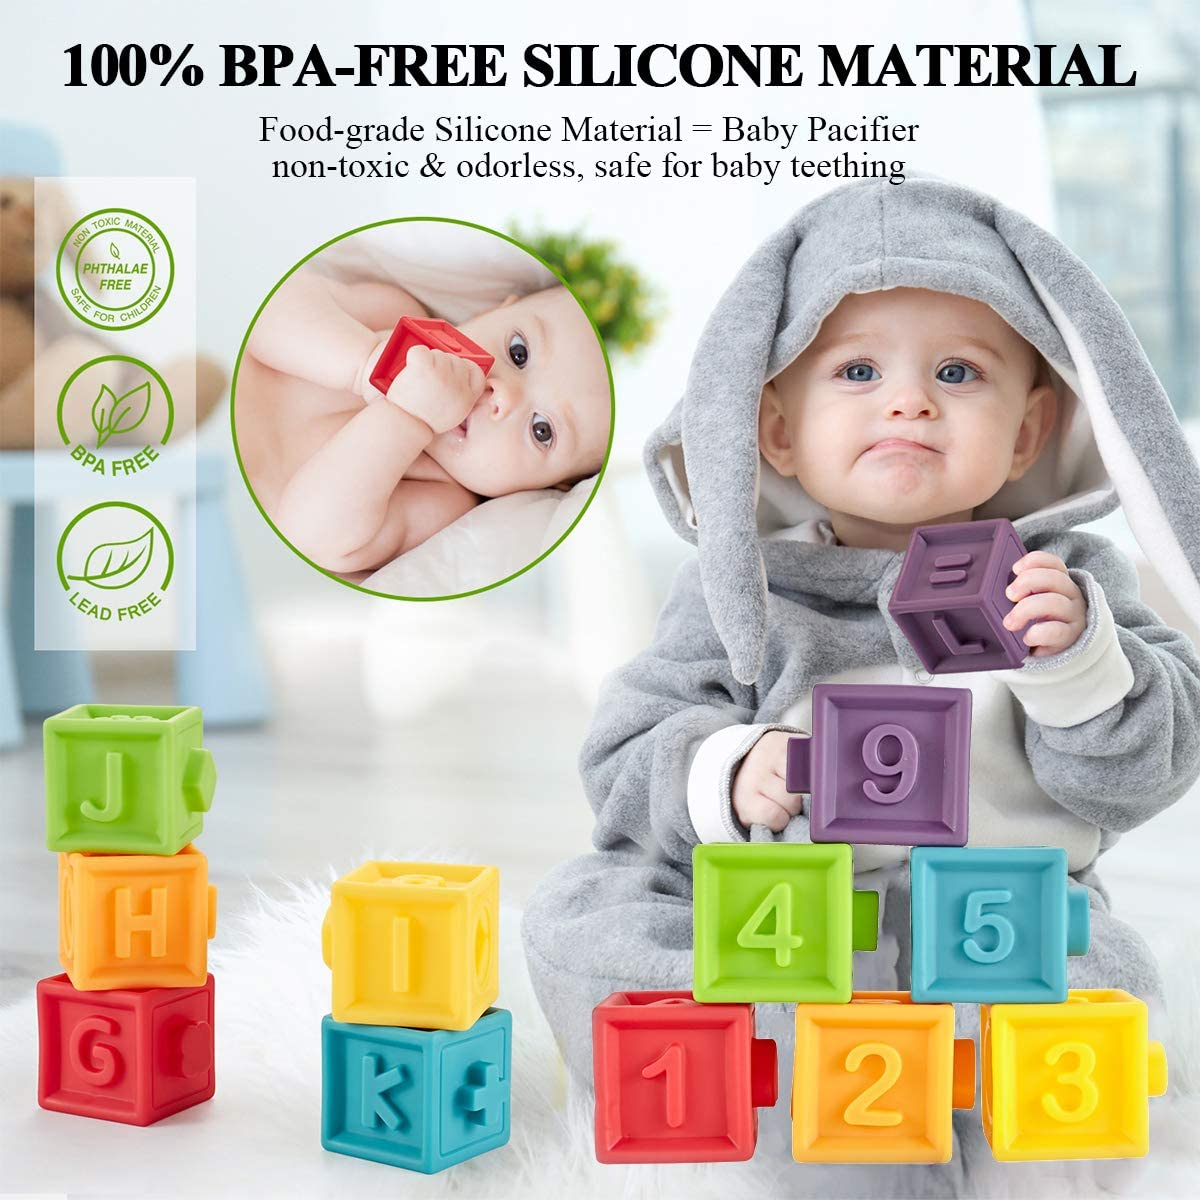 Squeeze Building Blocks for Toddlers Set of 12 Colorful Stacking Block Set Teething Chewing Early Educational Puzzle Toys for 6+ Months with Numbers Animals BPA-Free Kingtree Soft Baby Blocks